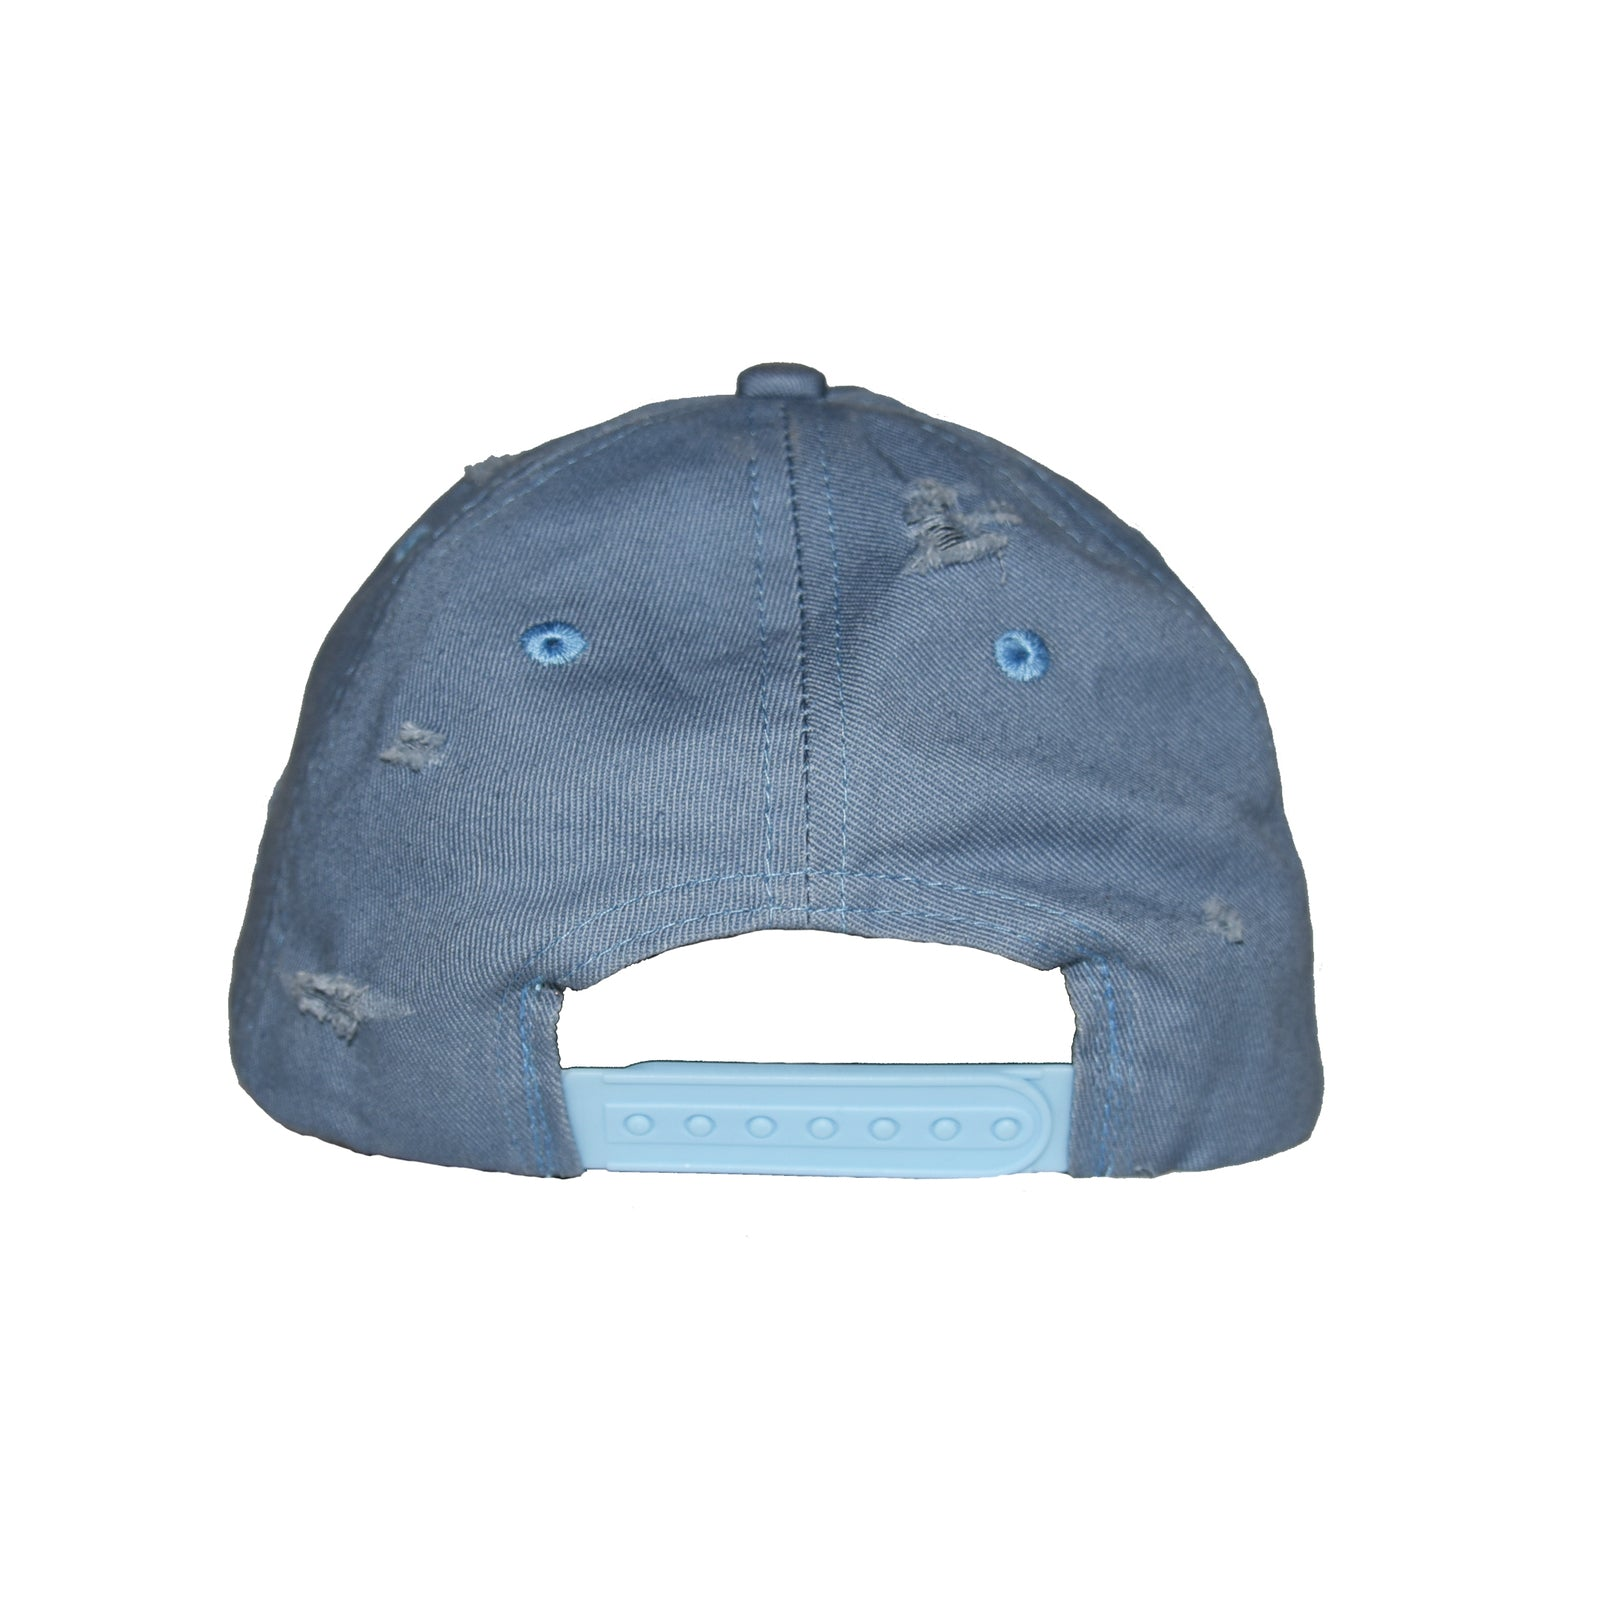 Destroyed baseball cap jeans